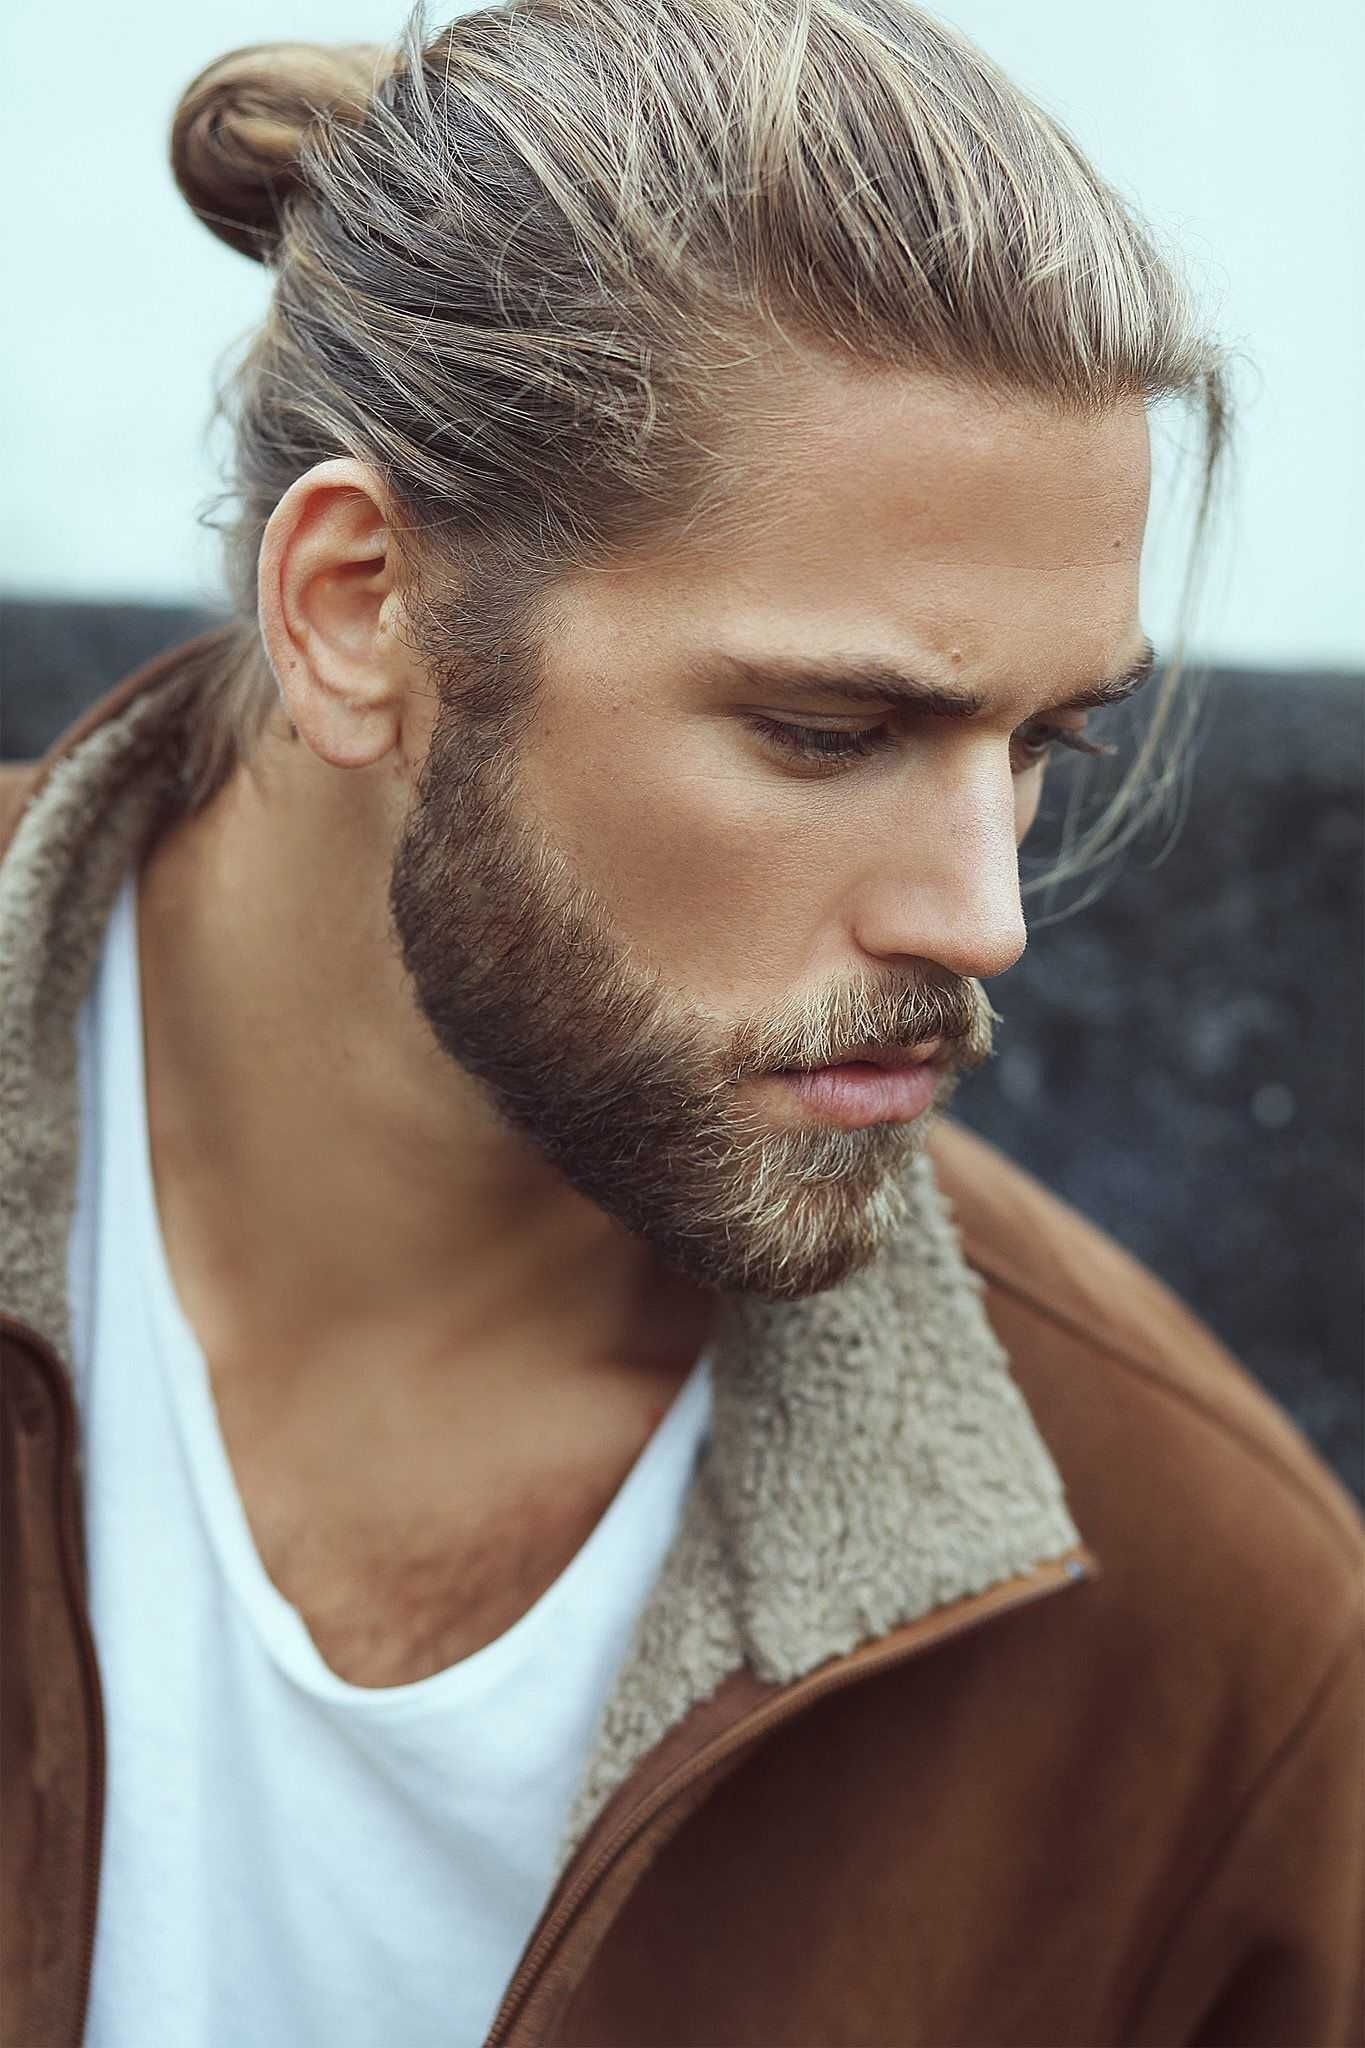 23 Macho Hairstyles For Men With Long Hair Long Hair Styles Men